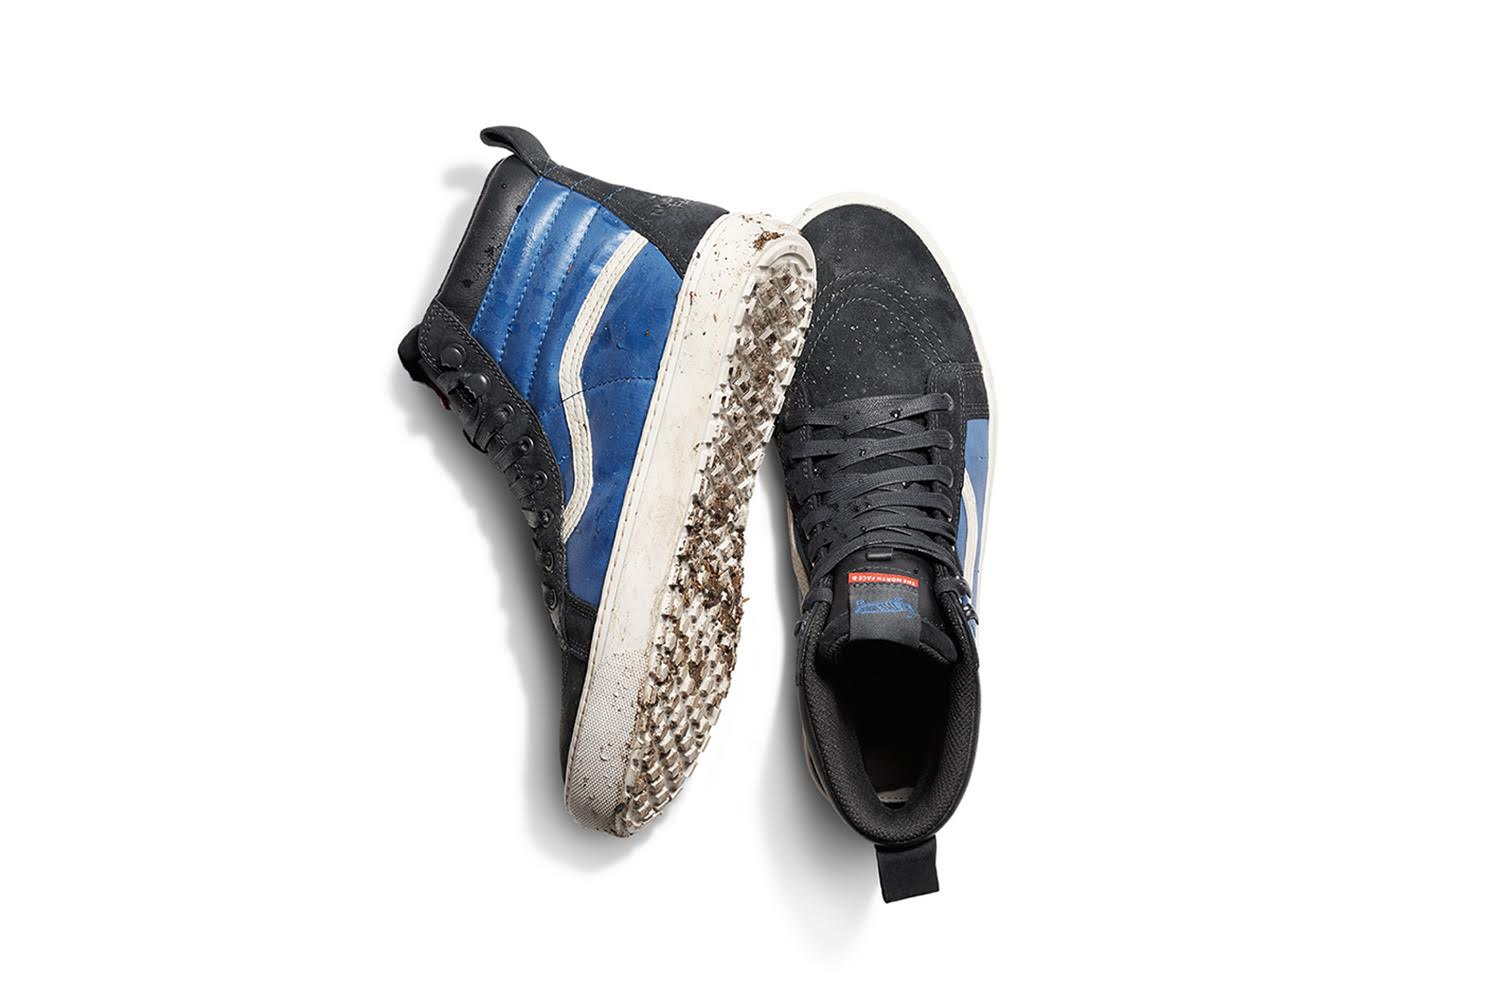 c2dbb8f4662d05 The Vault by Vans x The North Face Collection releases globally at the  following retailers  US  The Vans DQM General